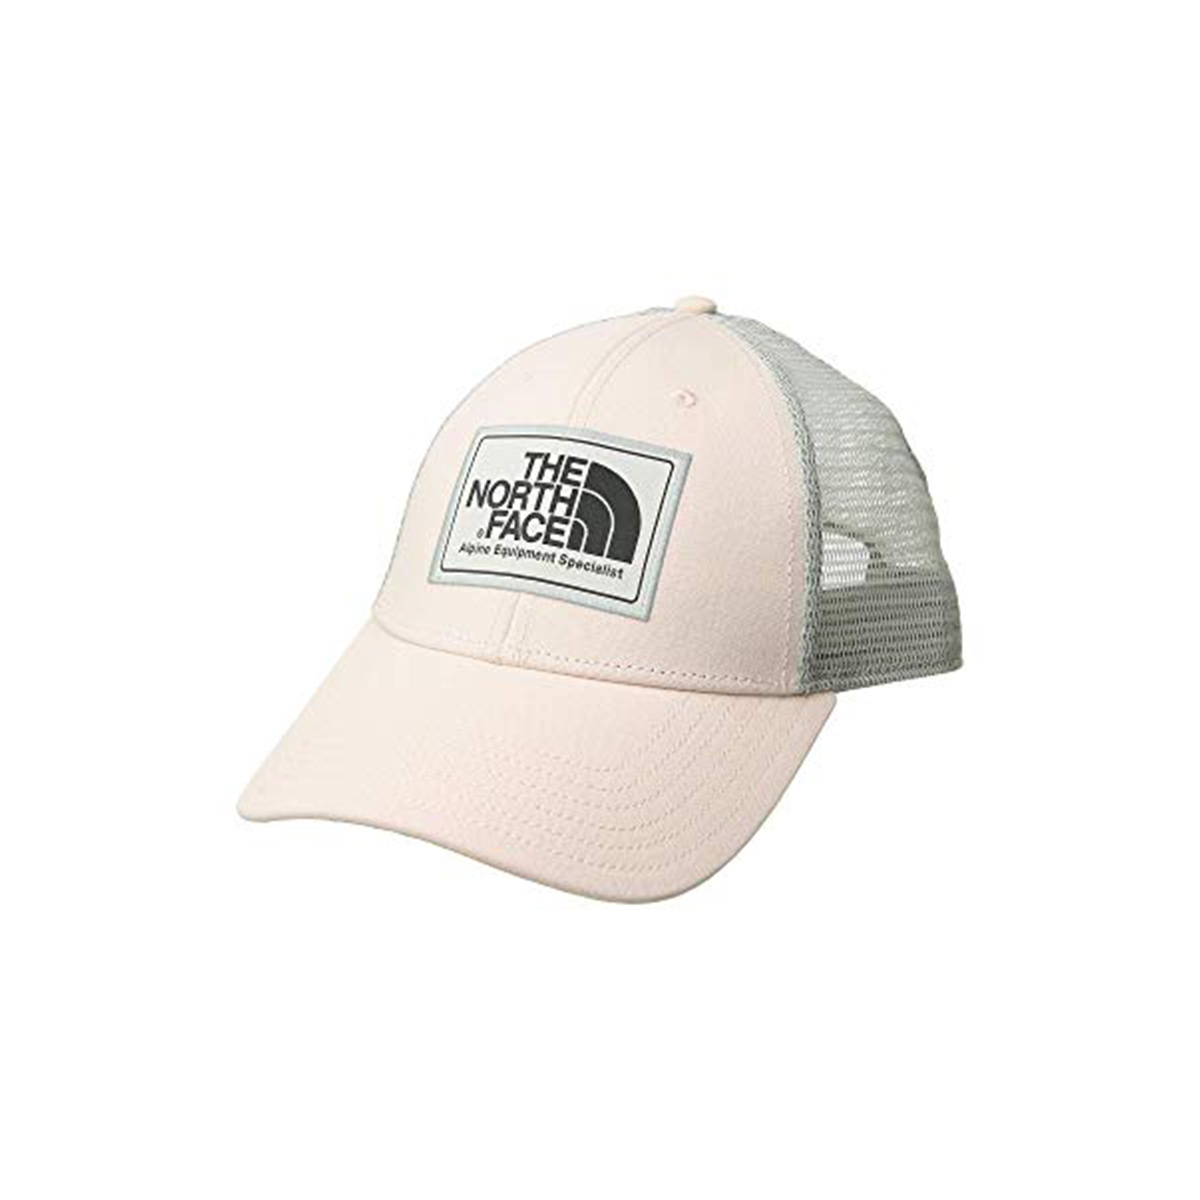 56f6e660 The North Face Mudder Trucker Hat - Gearhead Outfitters